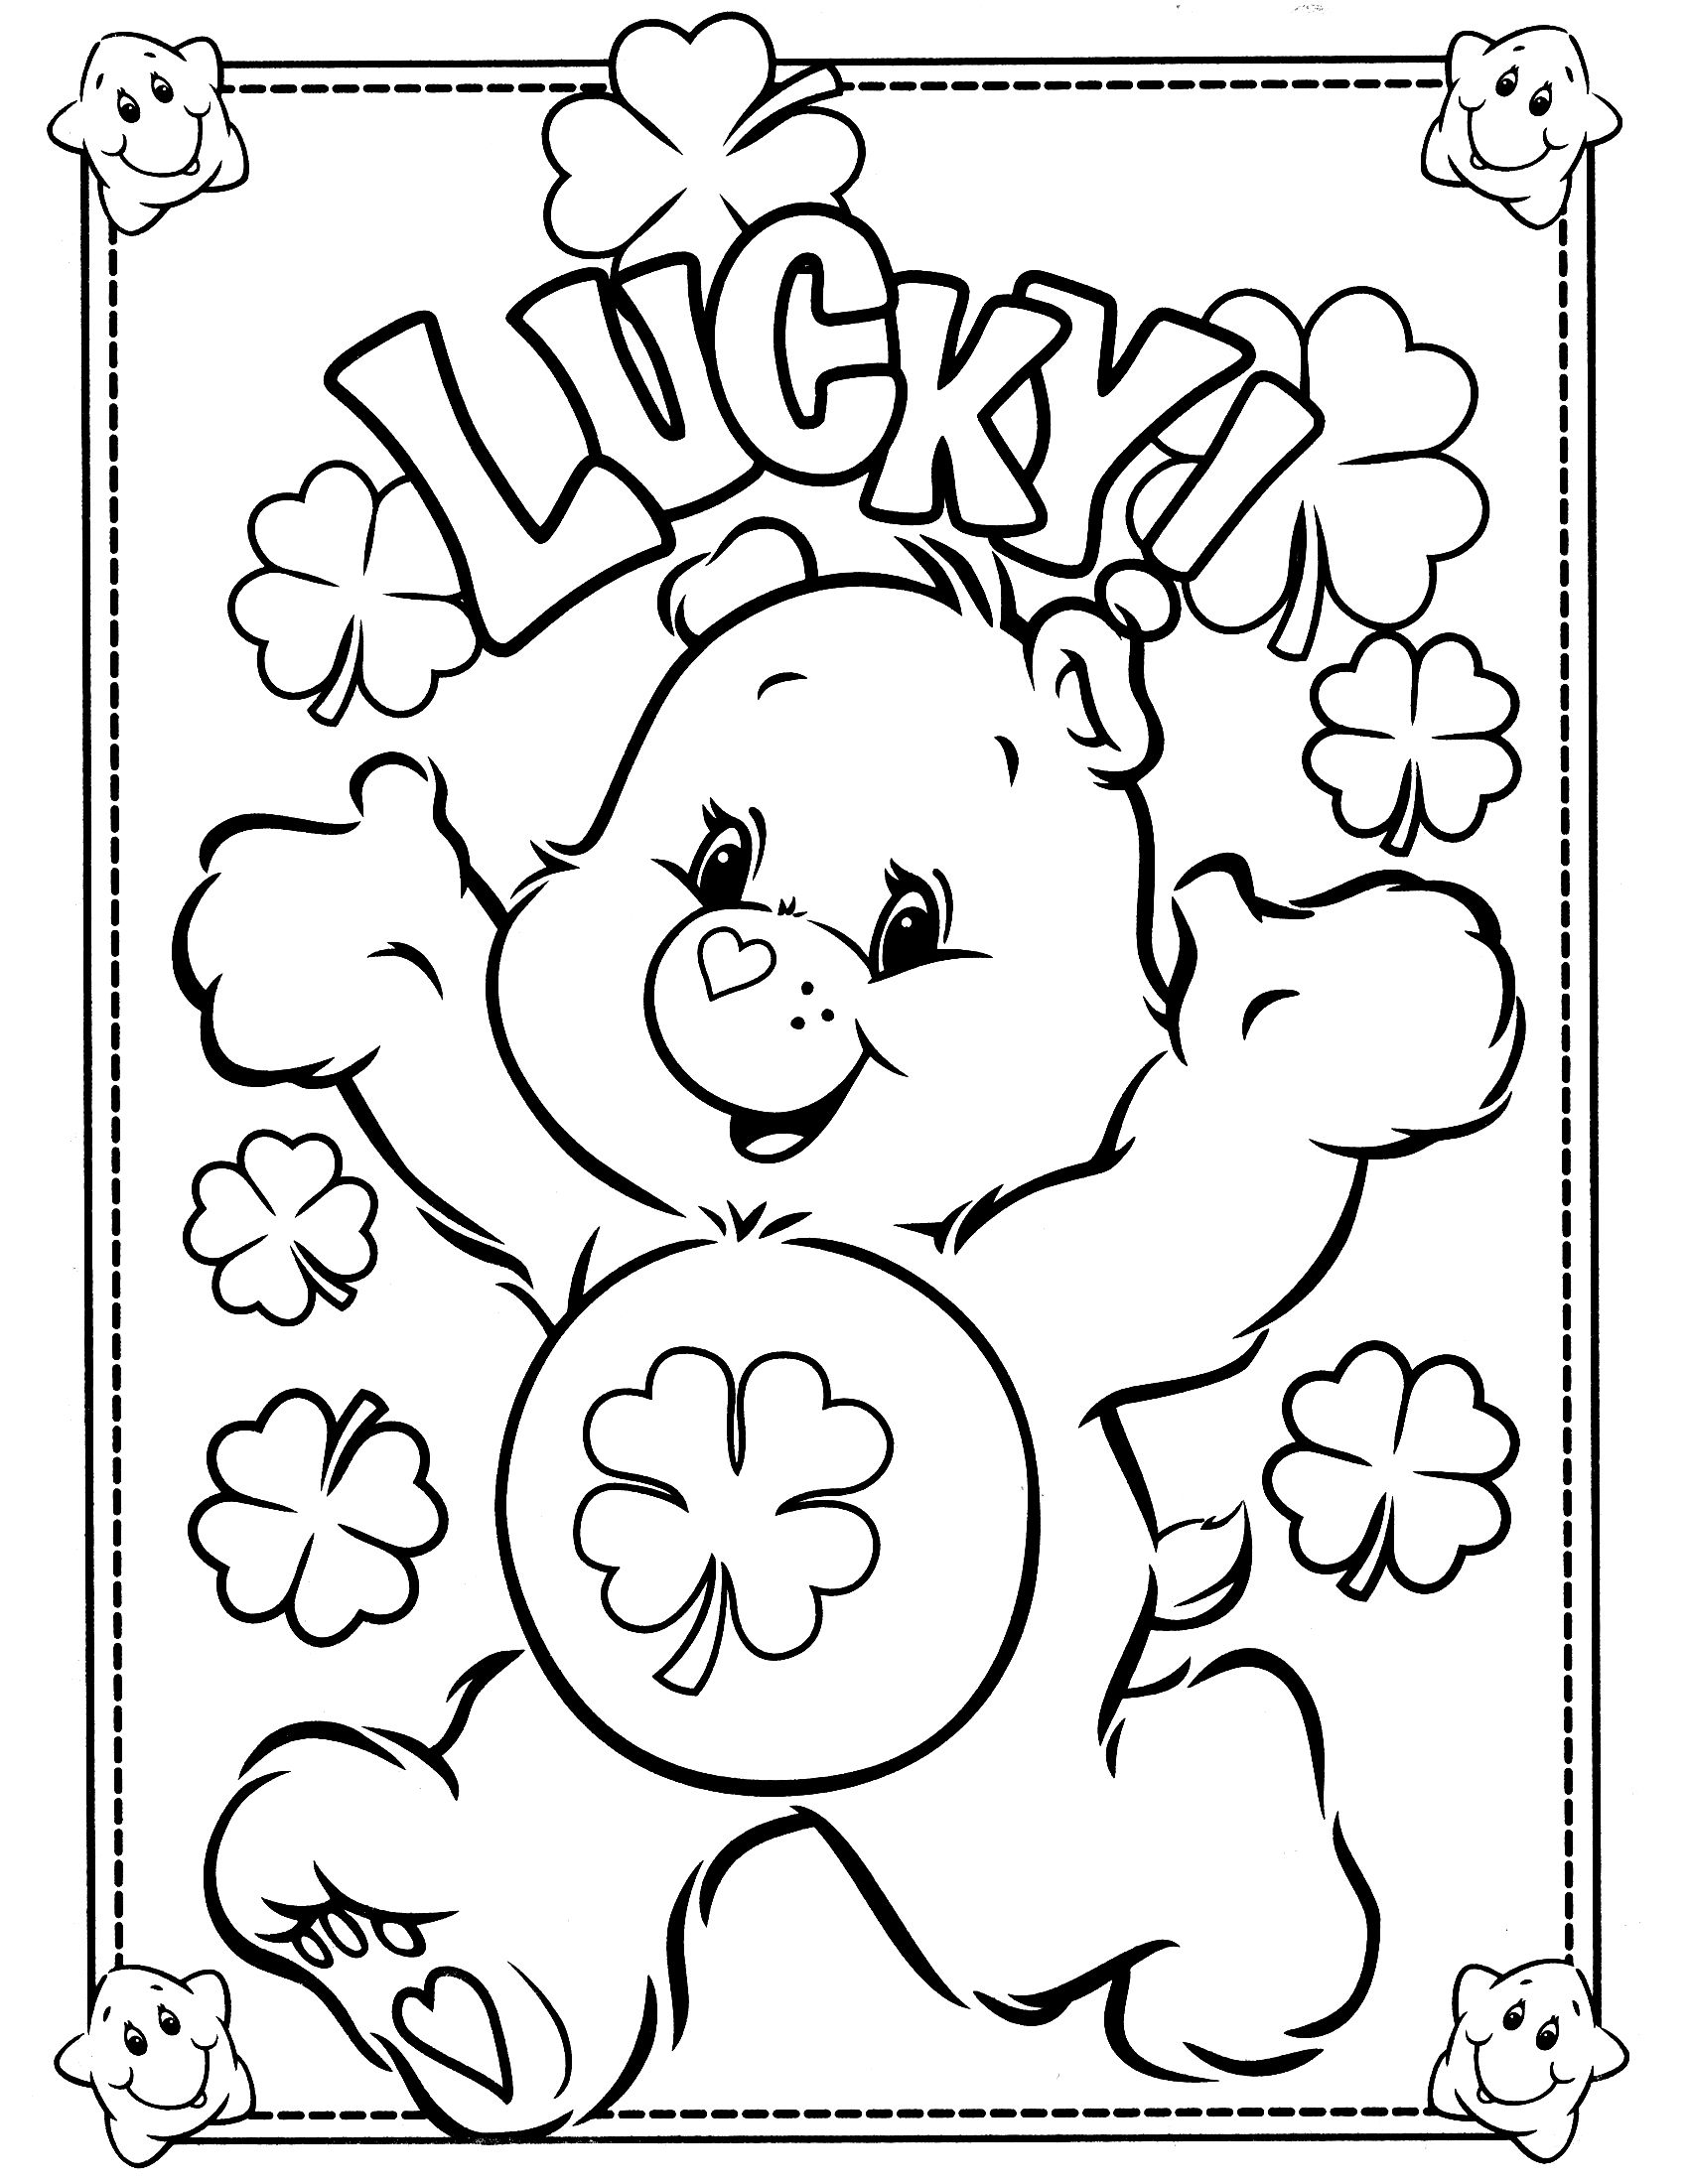 Care Bear Coloring Pages Teddy Bear Coloring Pages Bear Coloring Pages Coloring Books